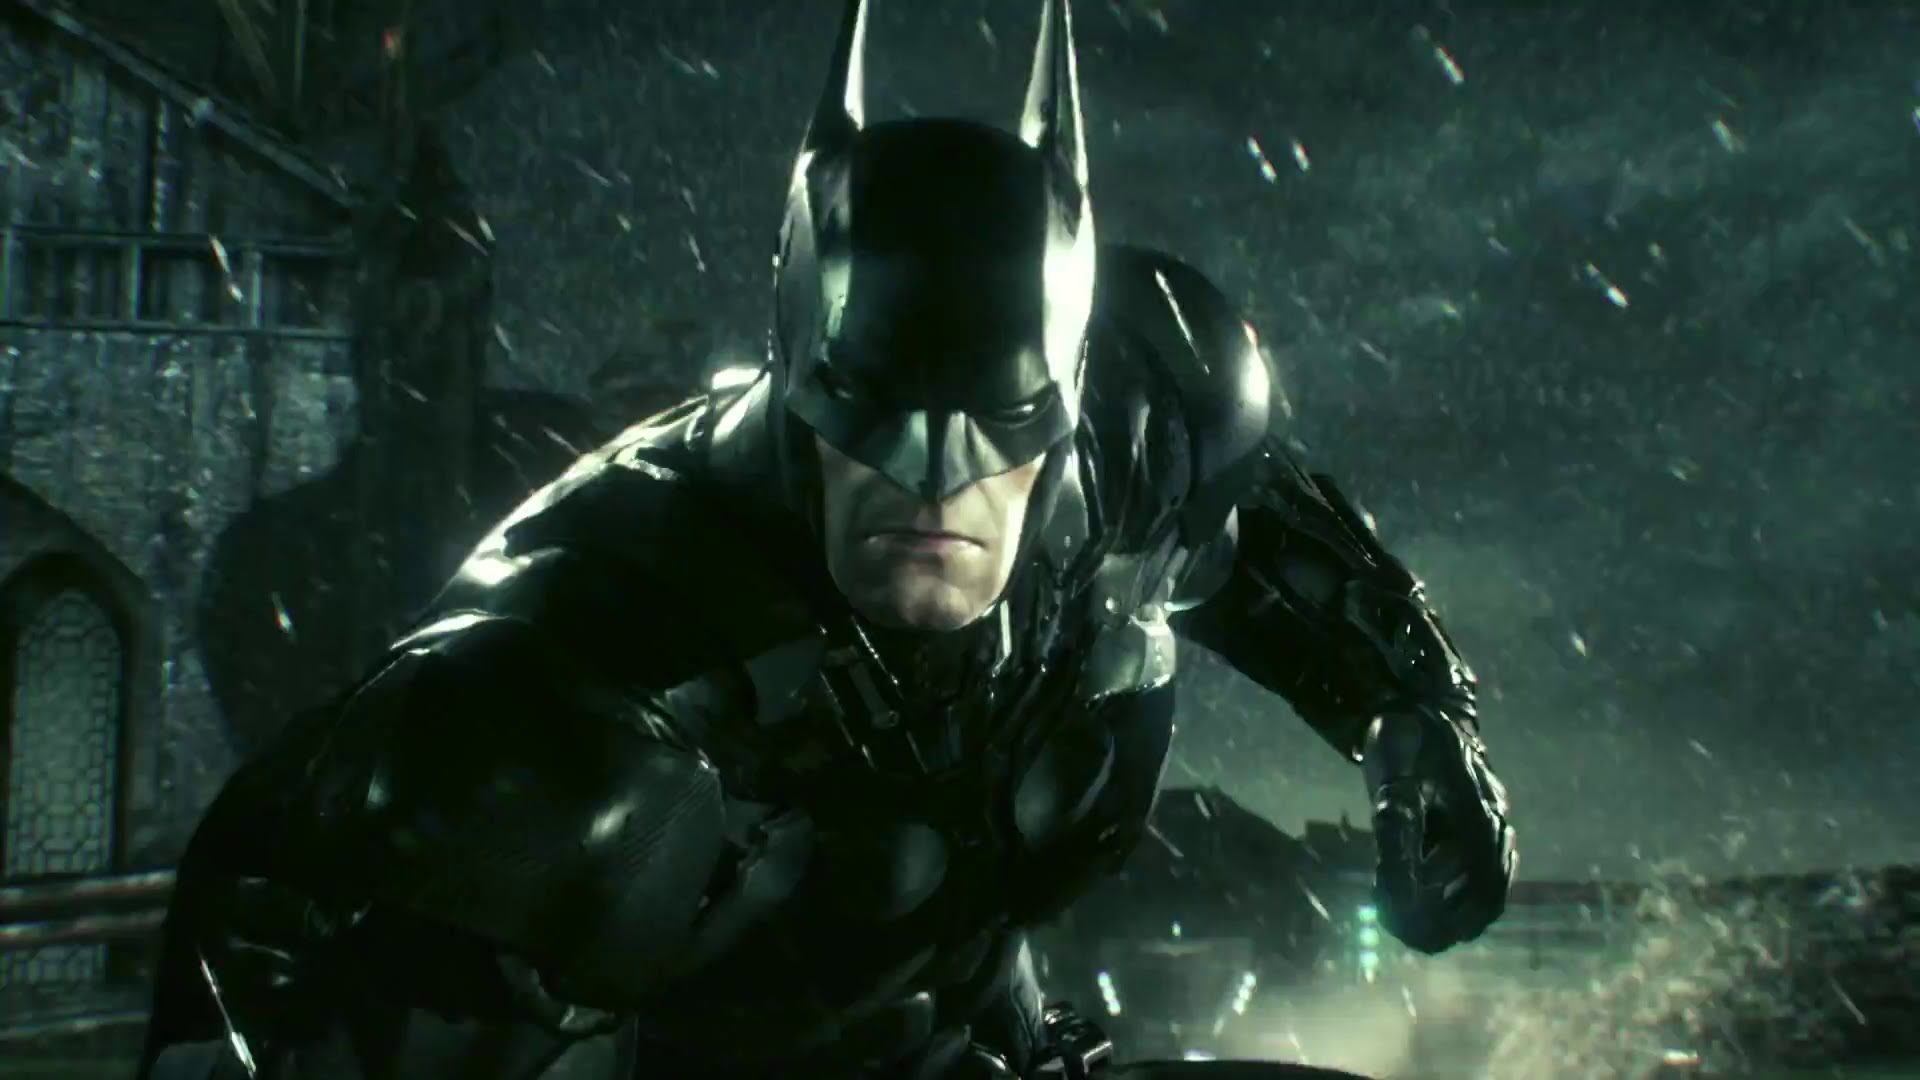 Batman Arkham Knight Ace Chemicals Infiltration Teil 2